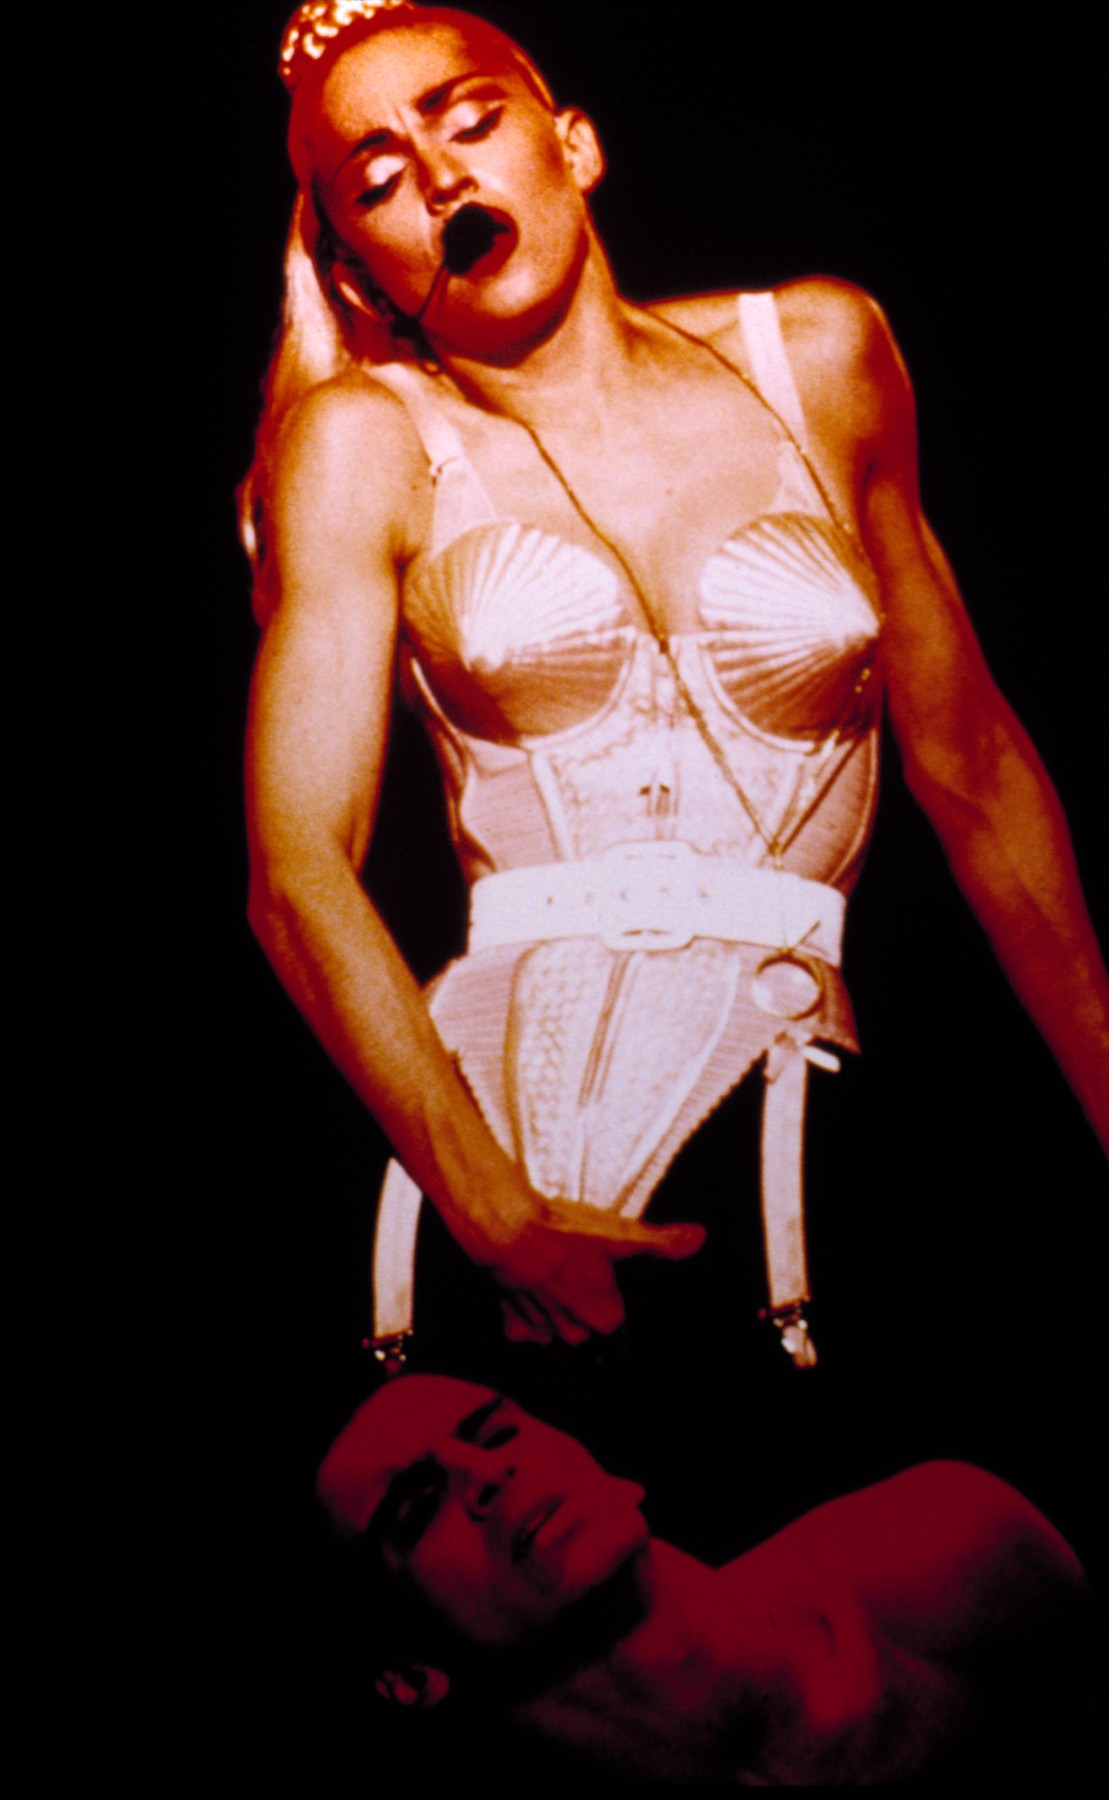 TRUTH OR DARE, Madonna, Blonde Ambition Tour (corset by Jean-Paul Gaultier), 1990-91., Image: 98341940, License: Rights-managed, Restrictions: For usage credit please use; Courtesy Everett Collection, Model Release: no, Credit line: Courtesy Everett Collection / Everett / Profimedia